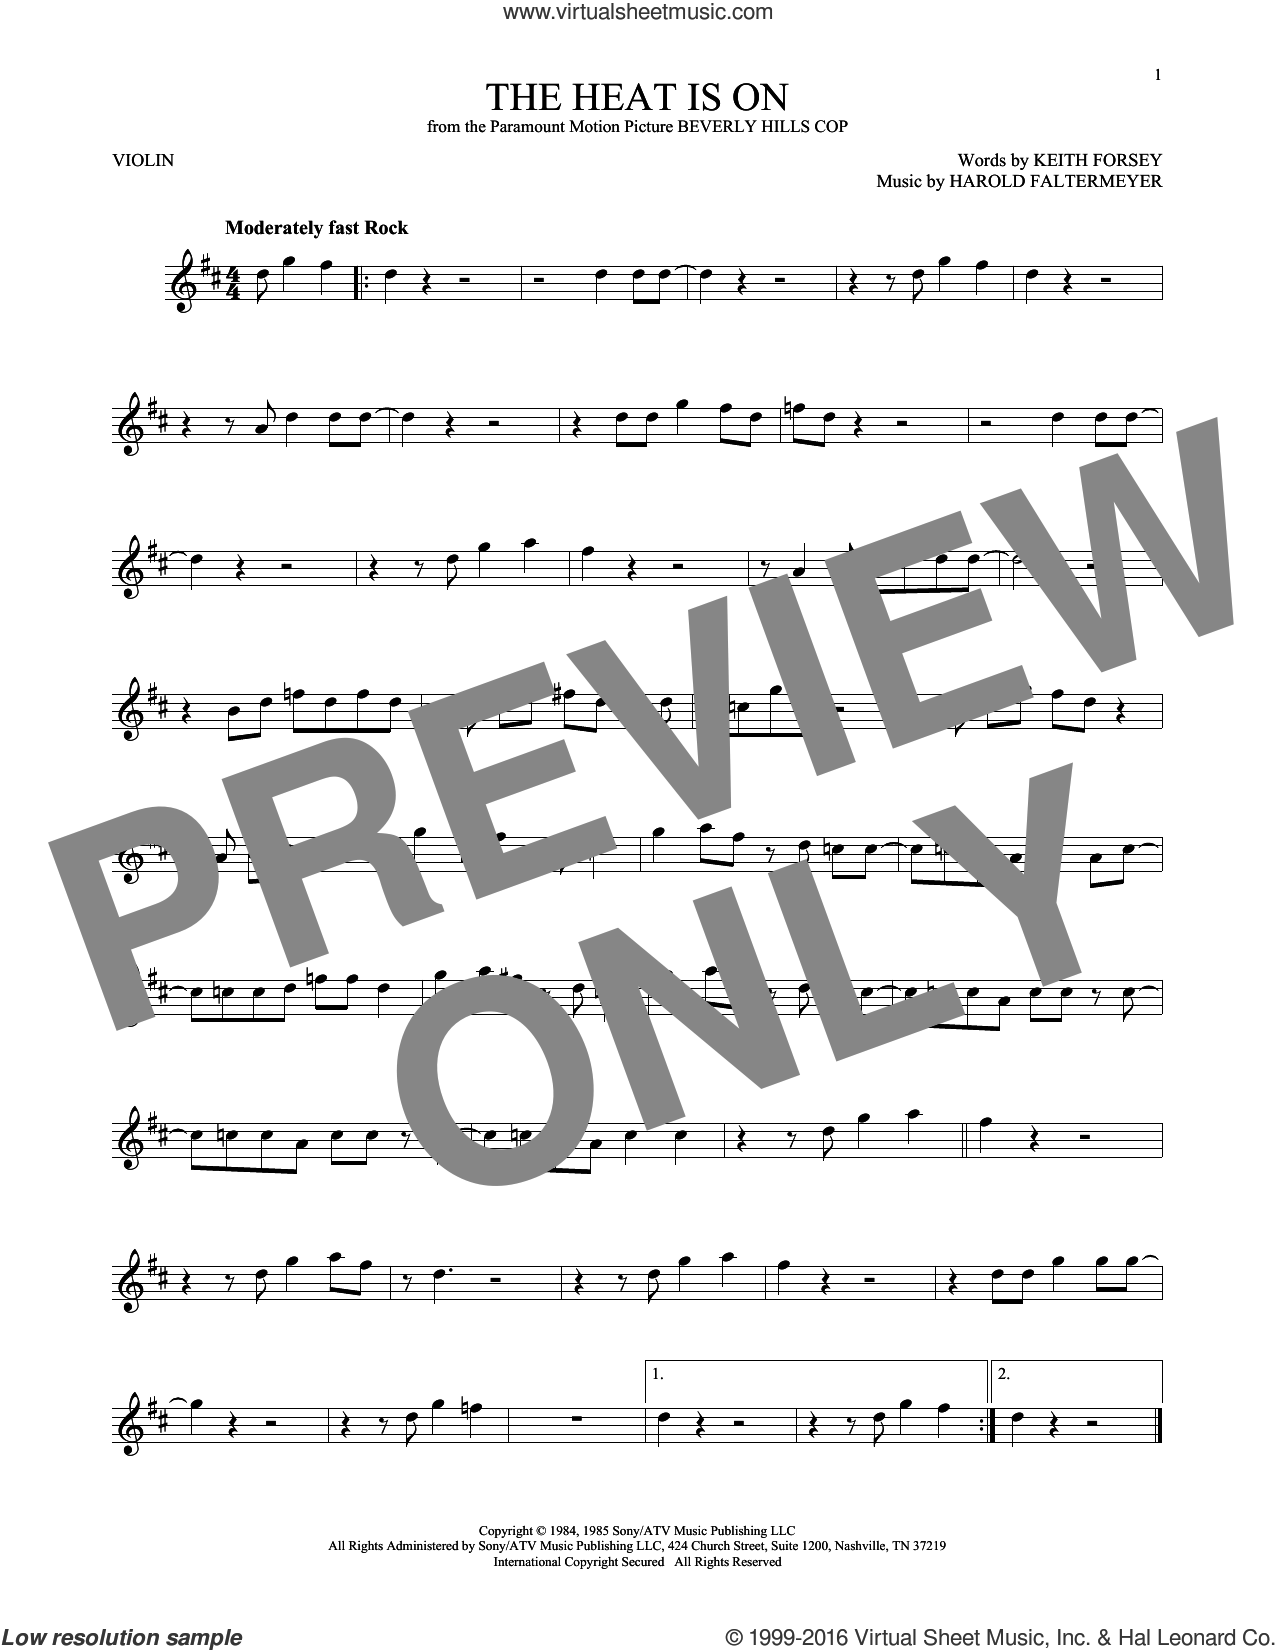 The Heat Is On sheet music for violin solo by Glenn Frey, Harold Faltermeyer and Keith Forsey. Score Image Preview.